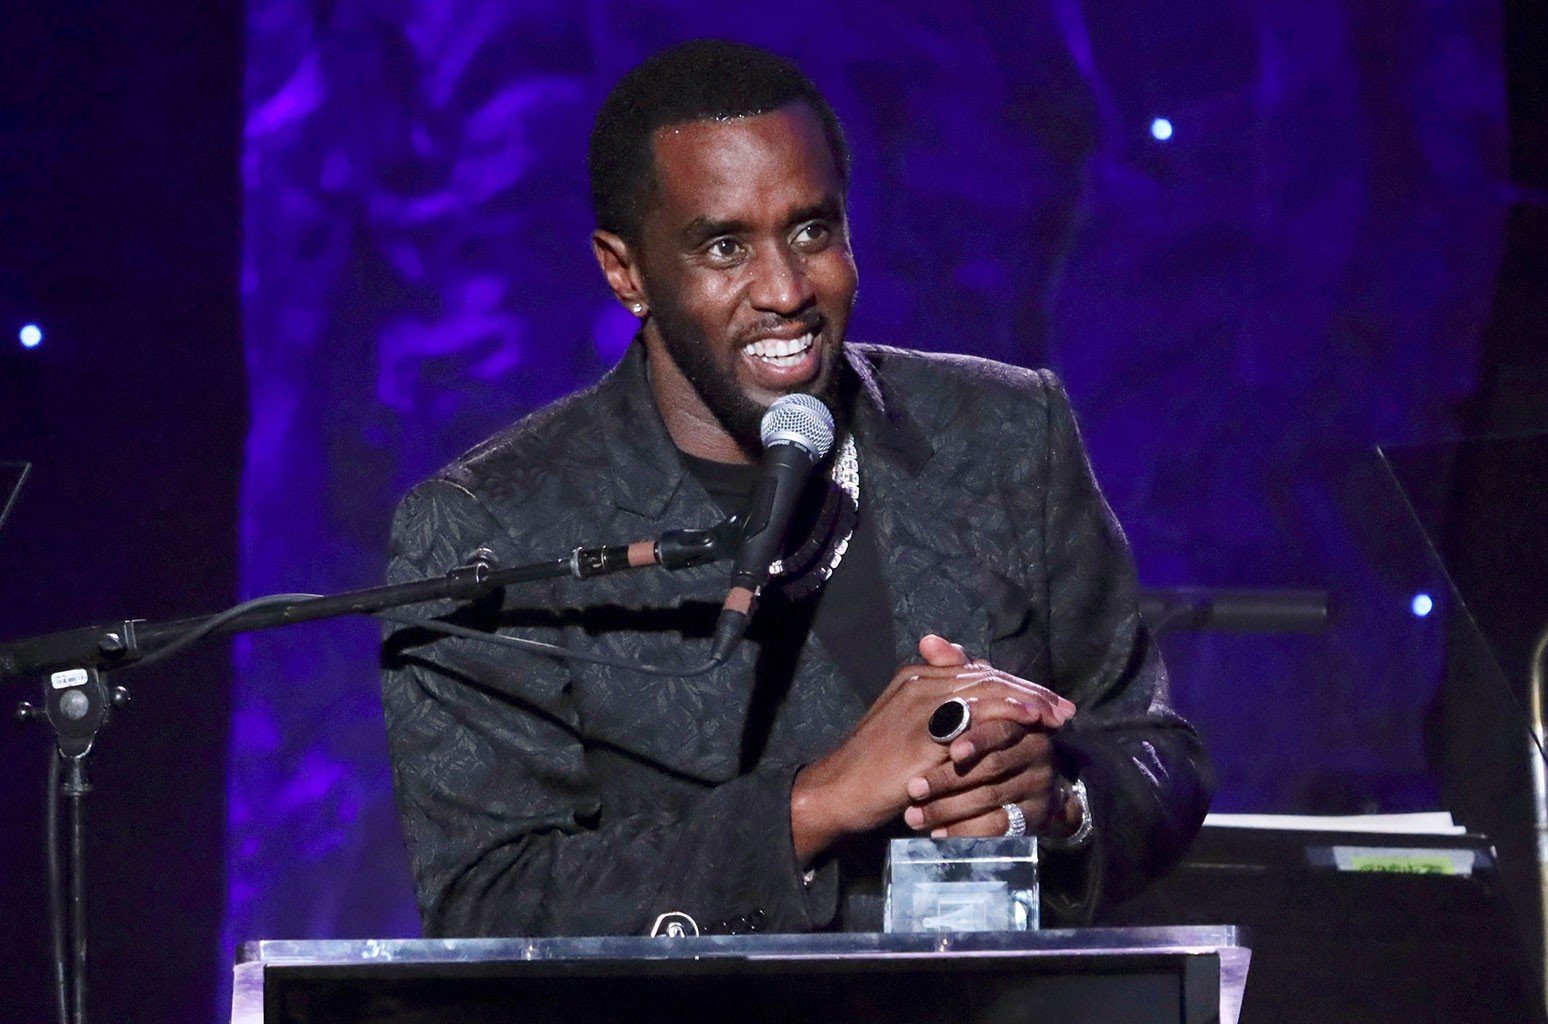 Sean 'Diddy' Combs Changes His Middle Name: 'Welcome to the Love Era'